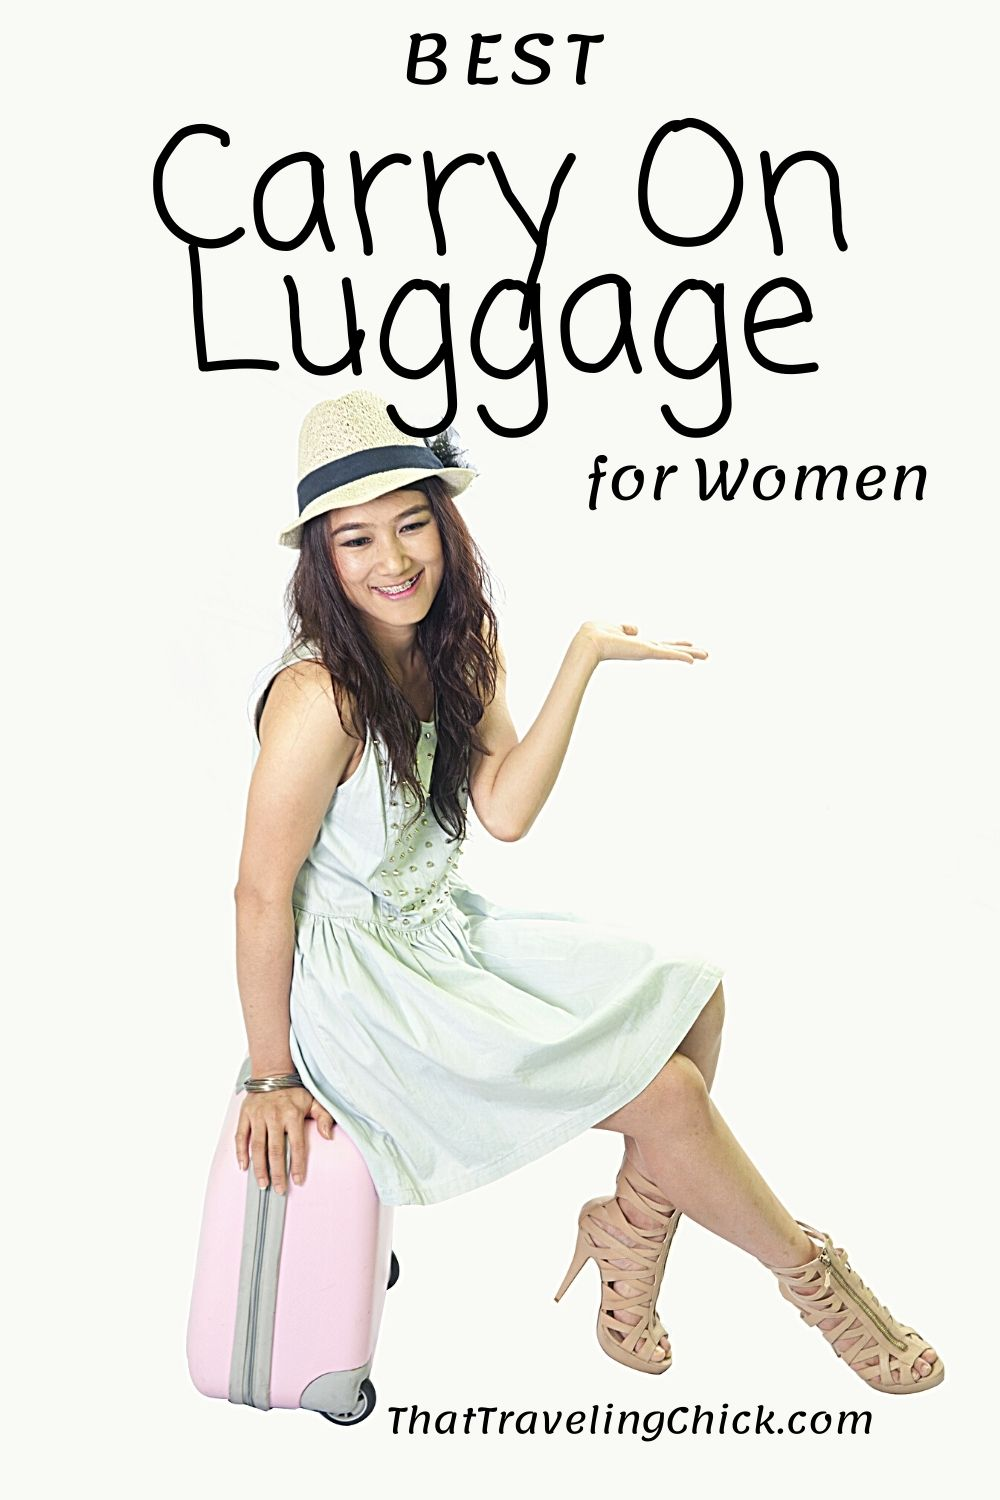 Best Carry On Luggage for Women #carryonluggage